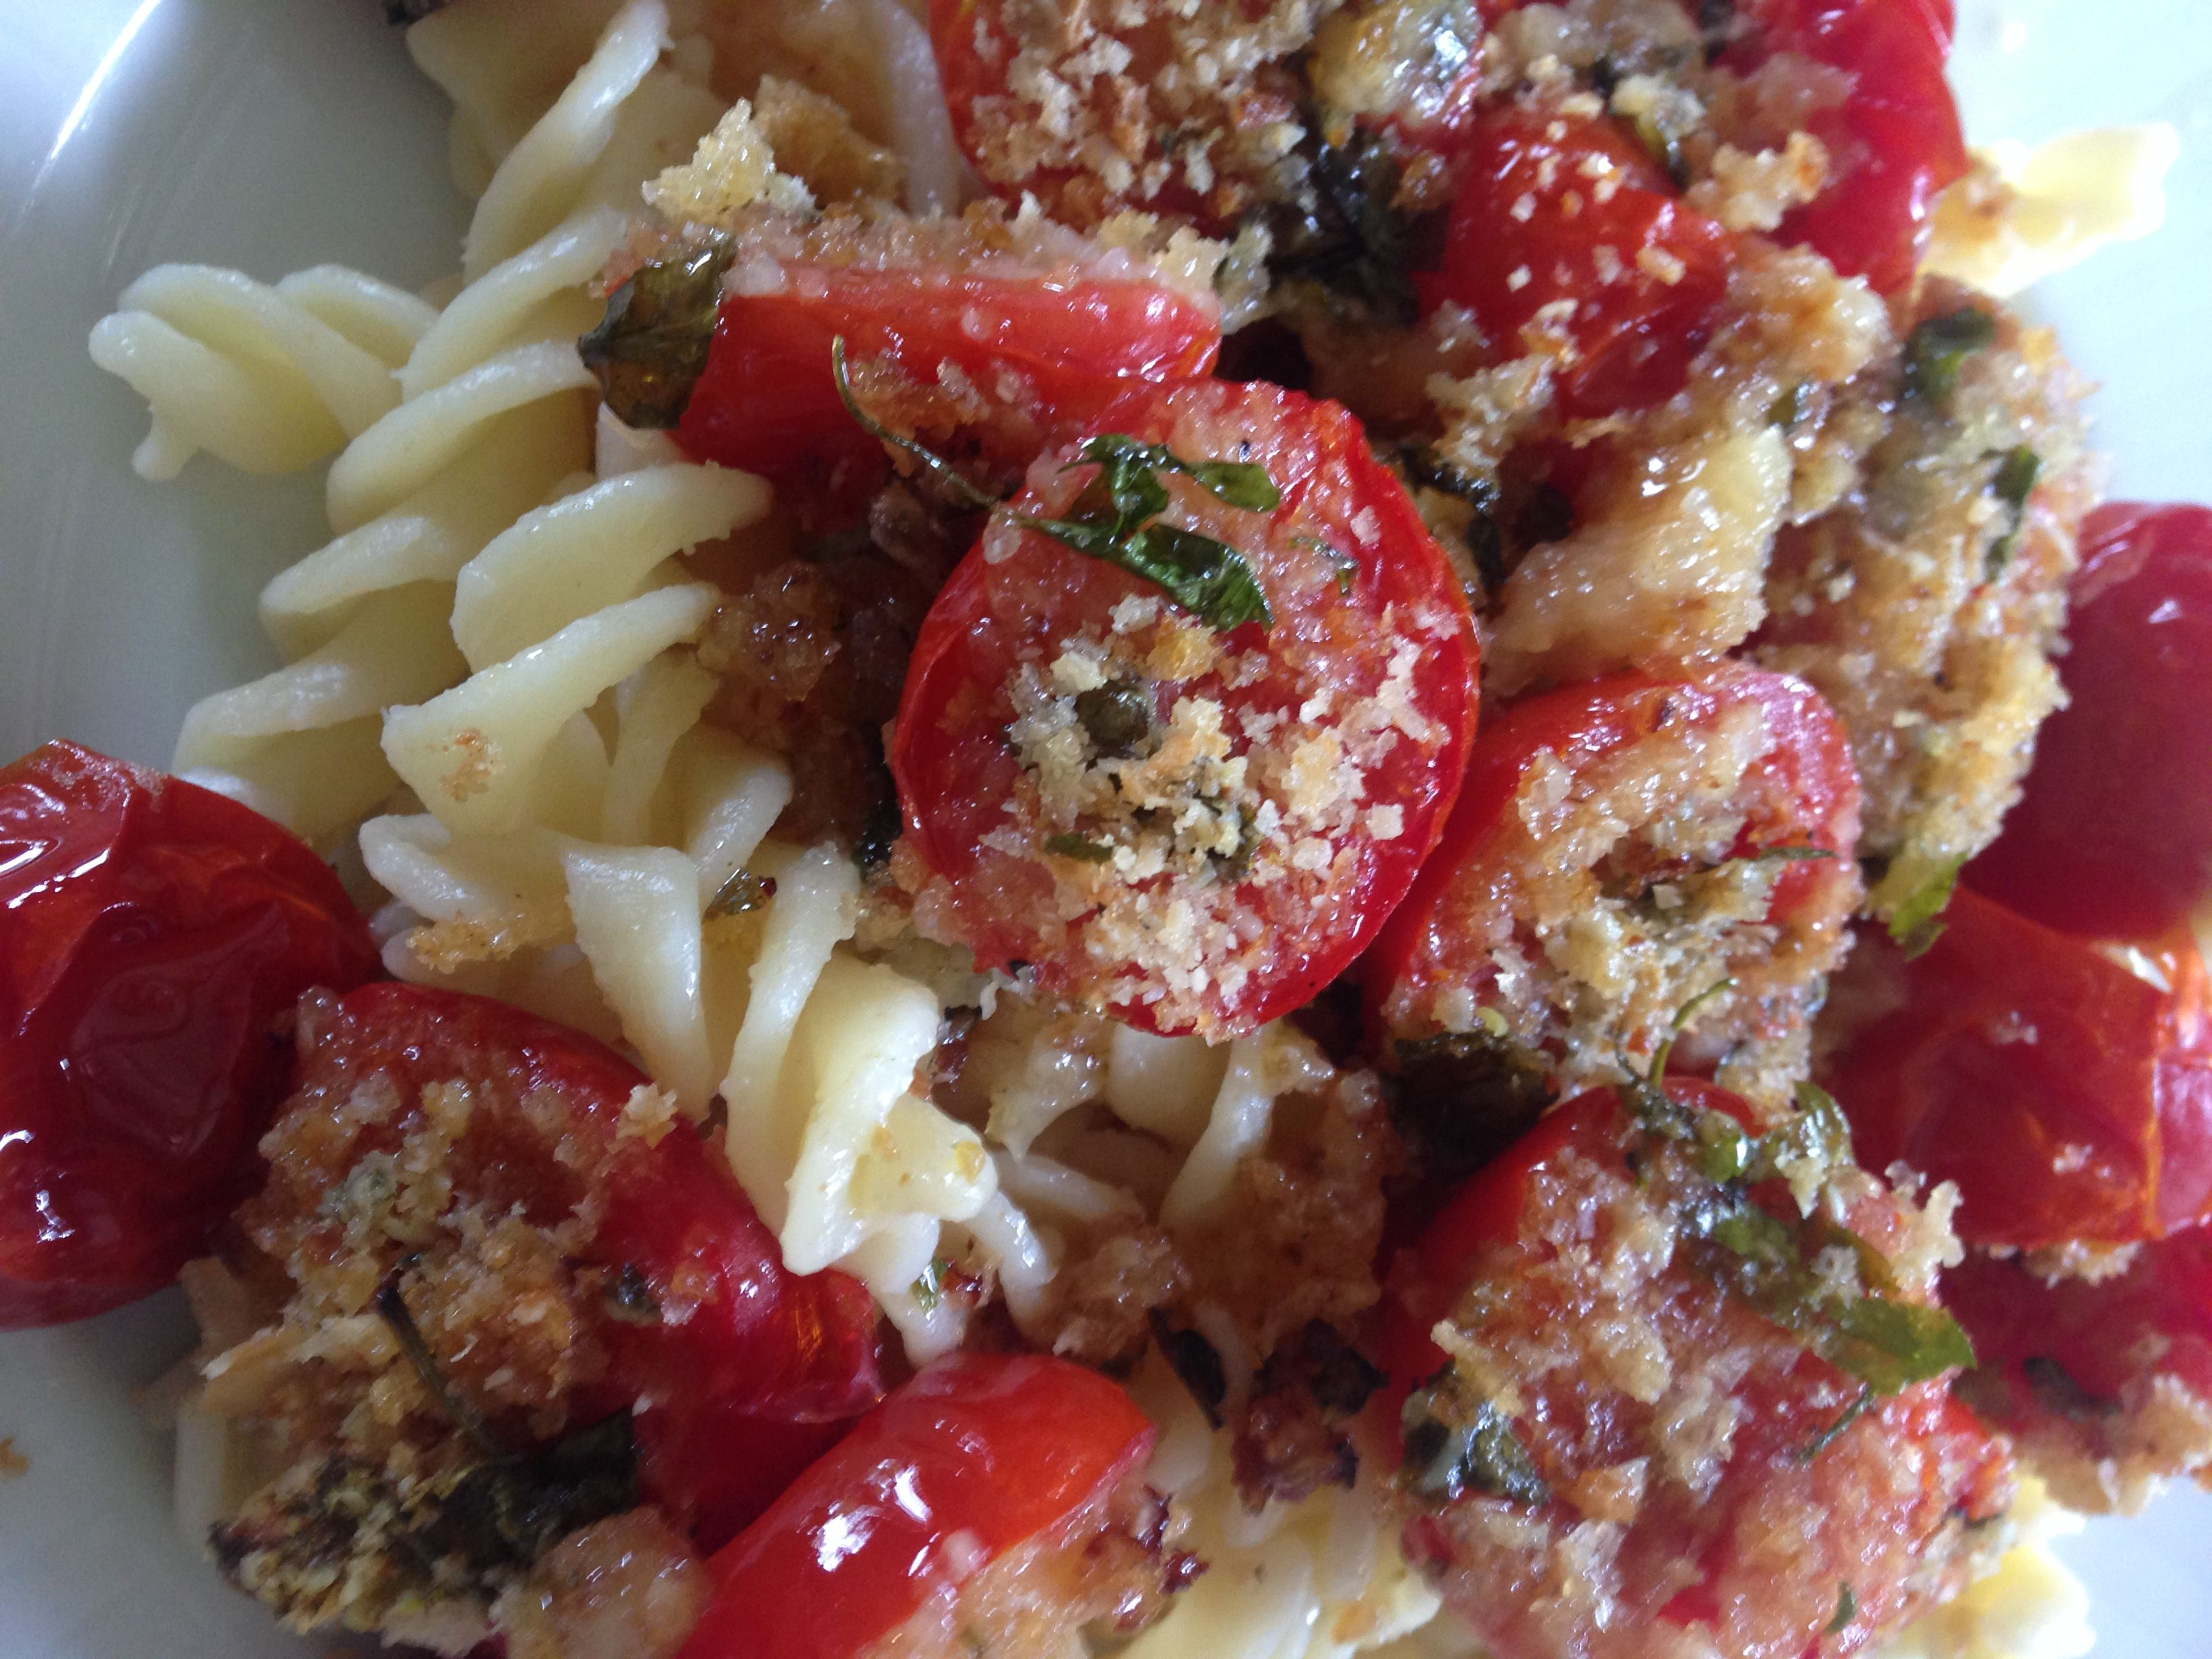 Spaghetti with Oven-Roasted Cherry Tomatoes